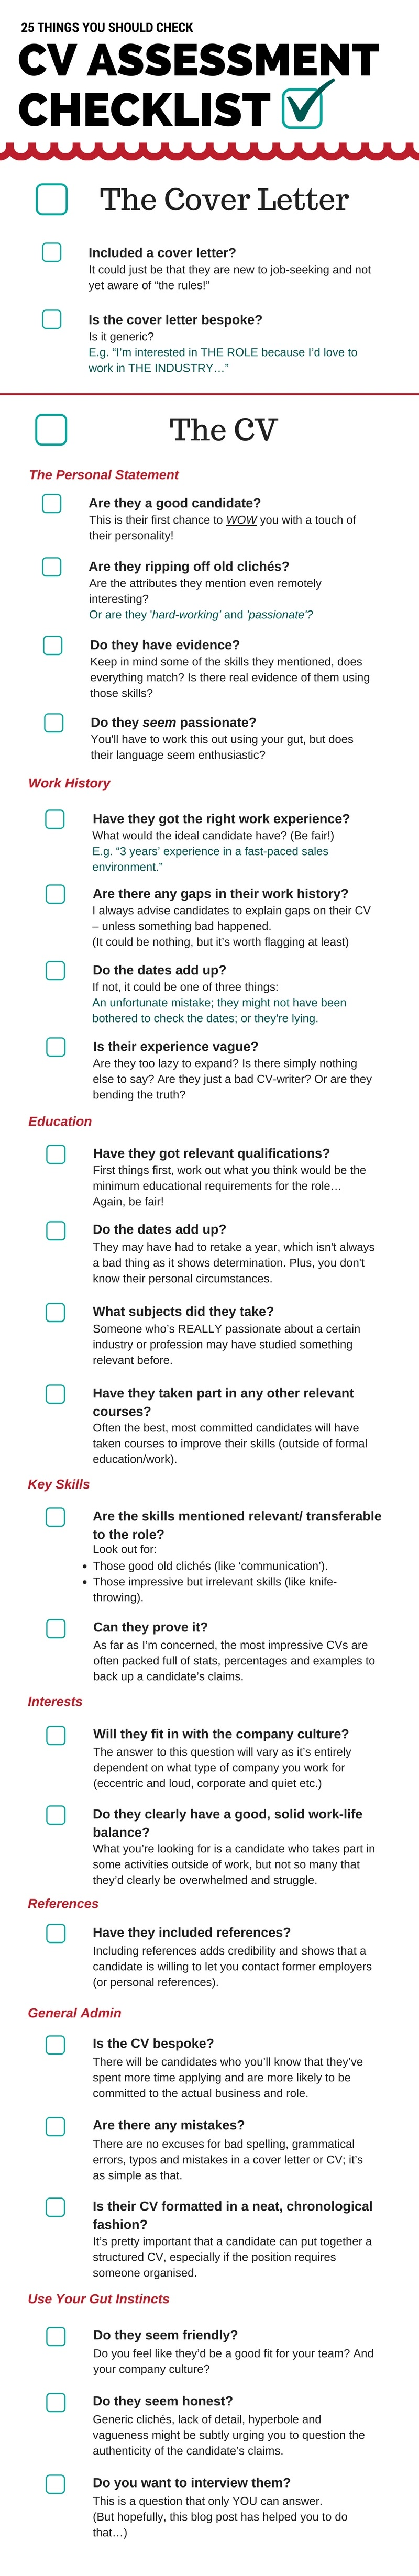 cv assessment checklist  25 things you should be checking